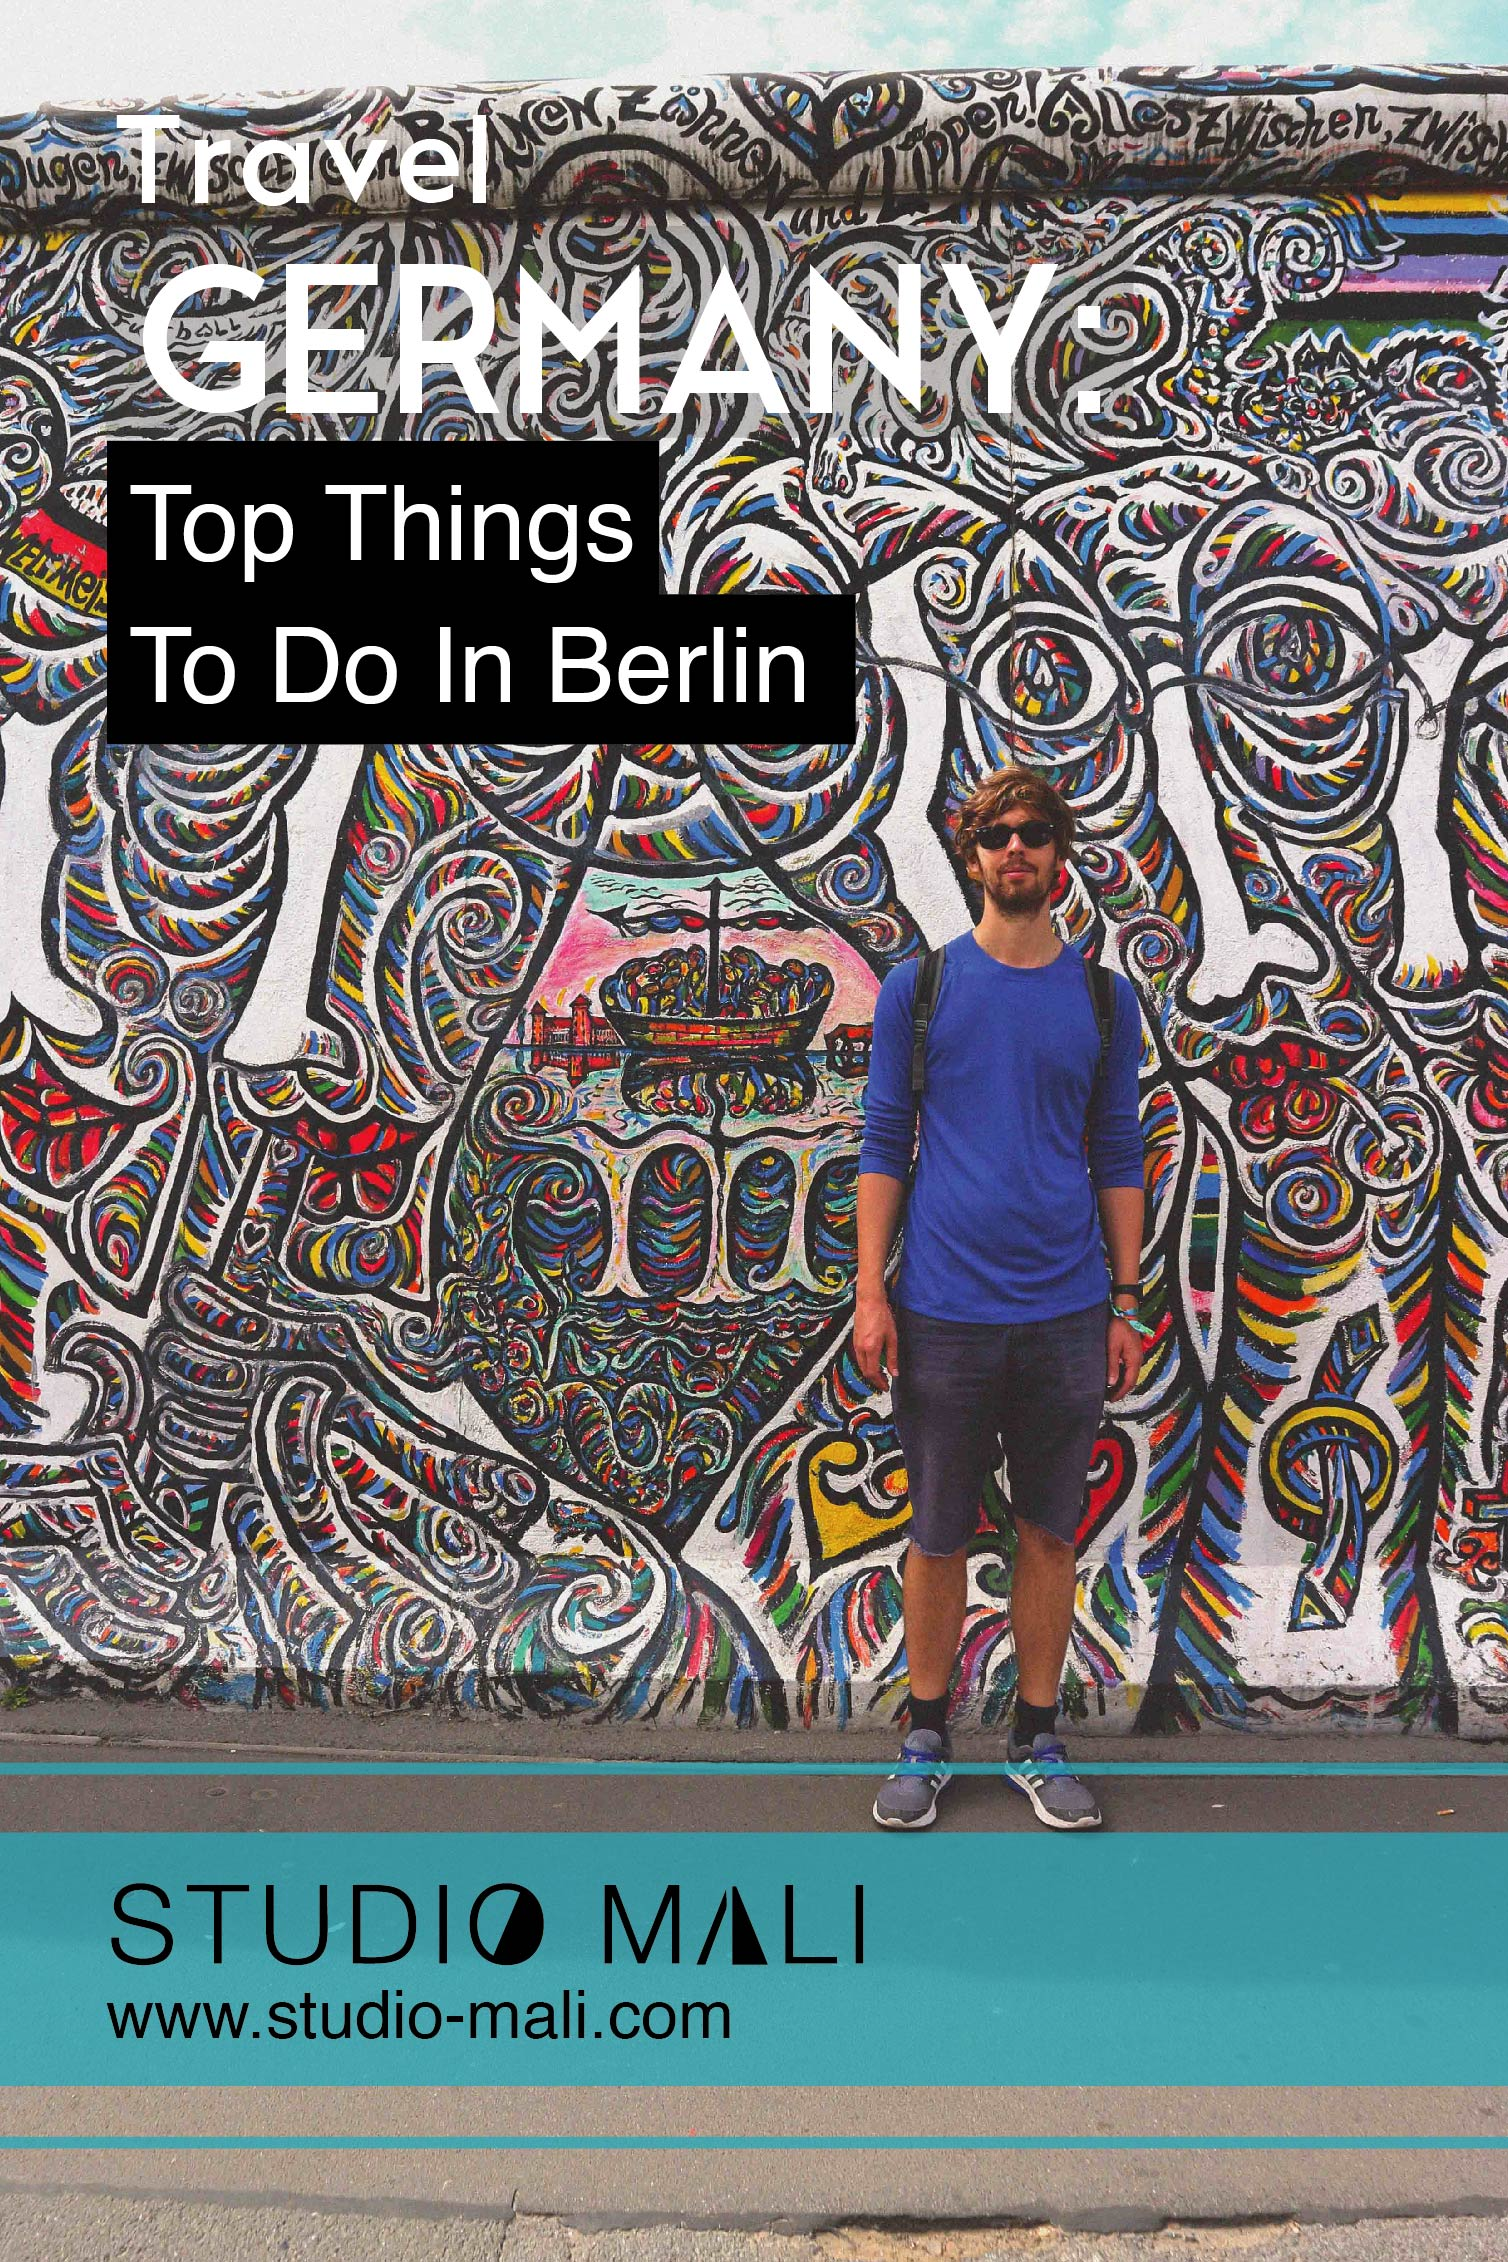 Germany - Top Things To Do In Berlin, by Studio Mali.jpg